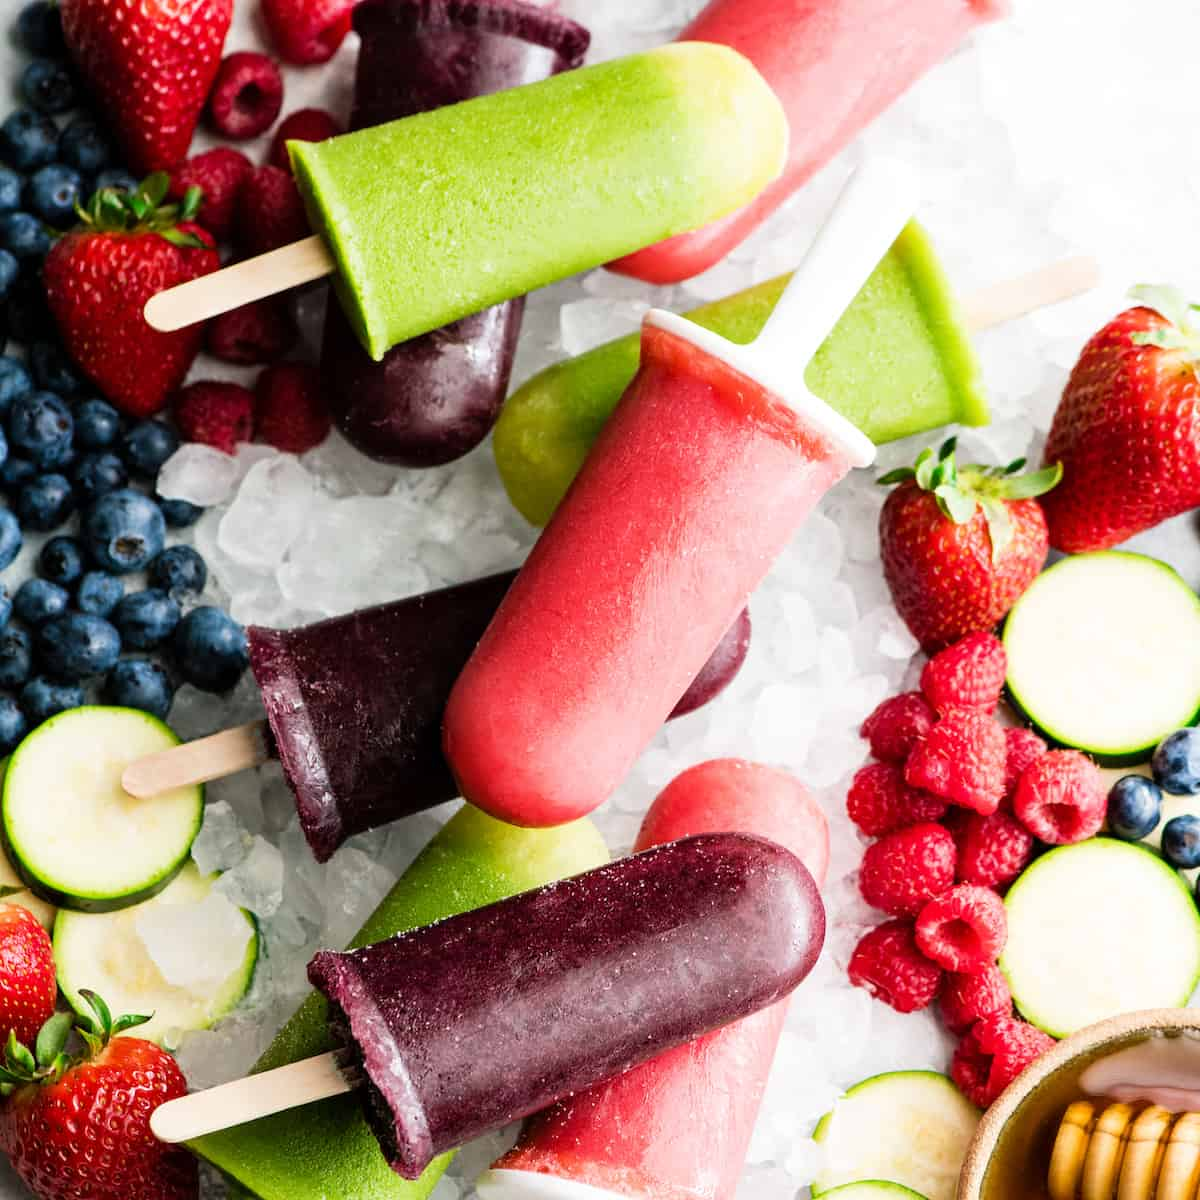 overhead view of 9 Homemade Fruit Popsicles in three colors: purple, green and red. Laying out on crushed ice with fresh fruit surrounding them.